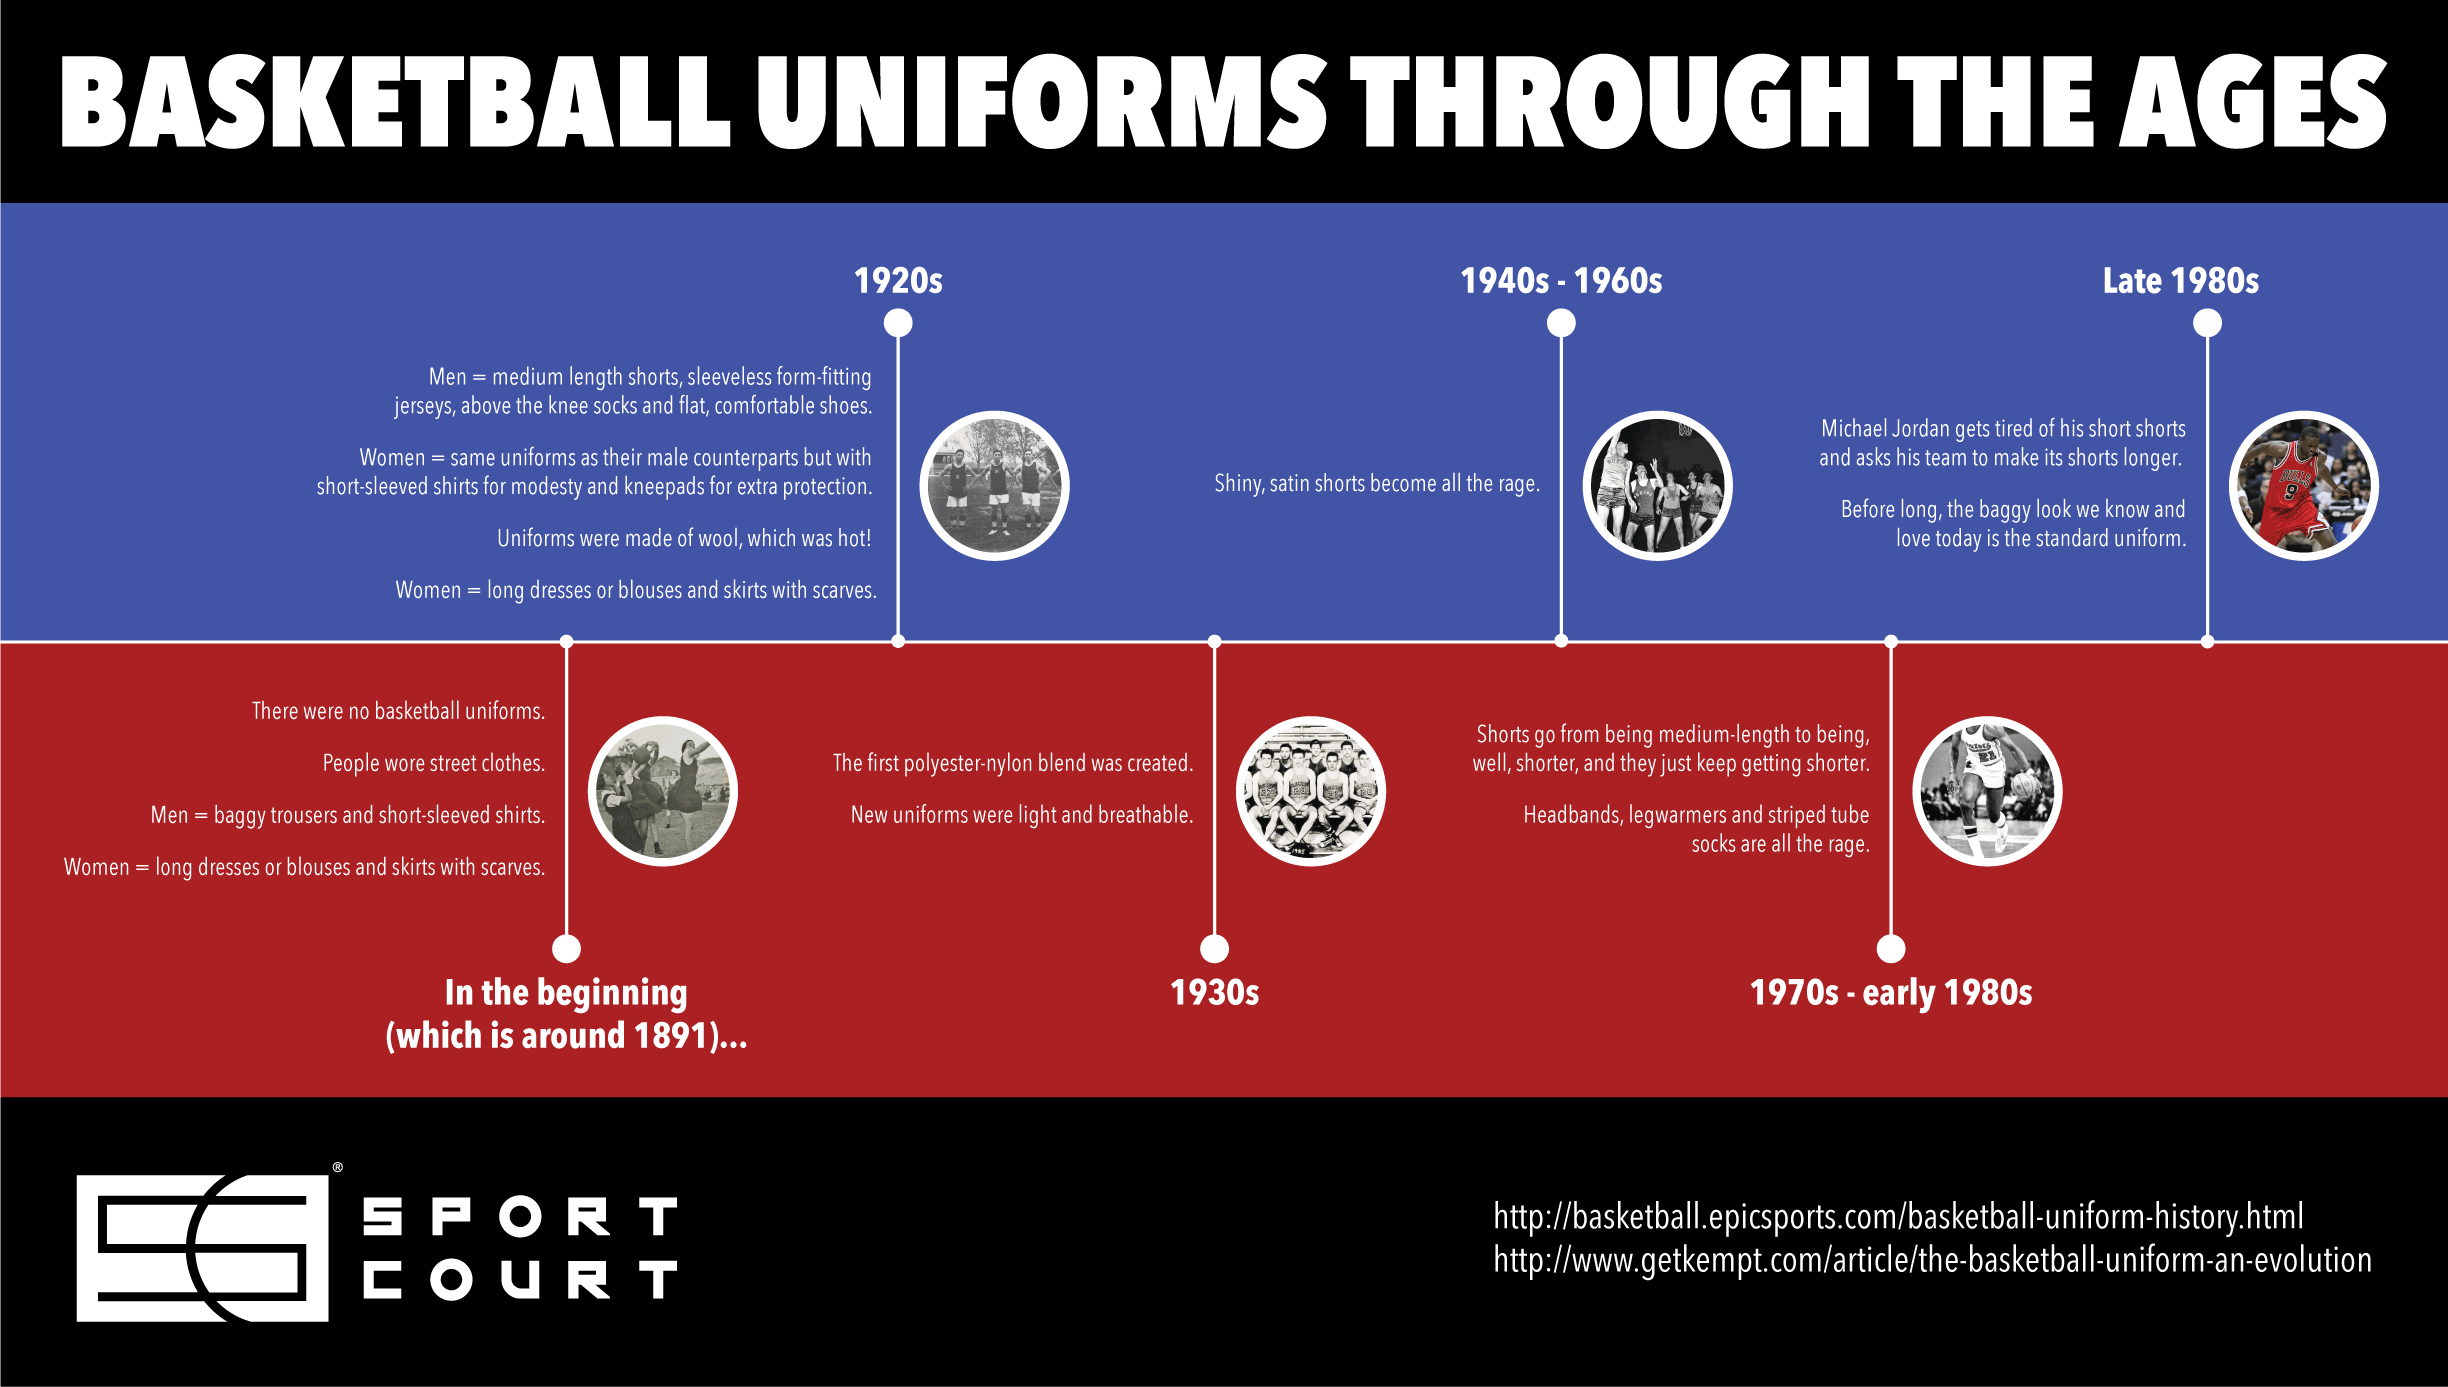 Basketball Uniforms Through the Ages